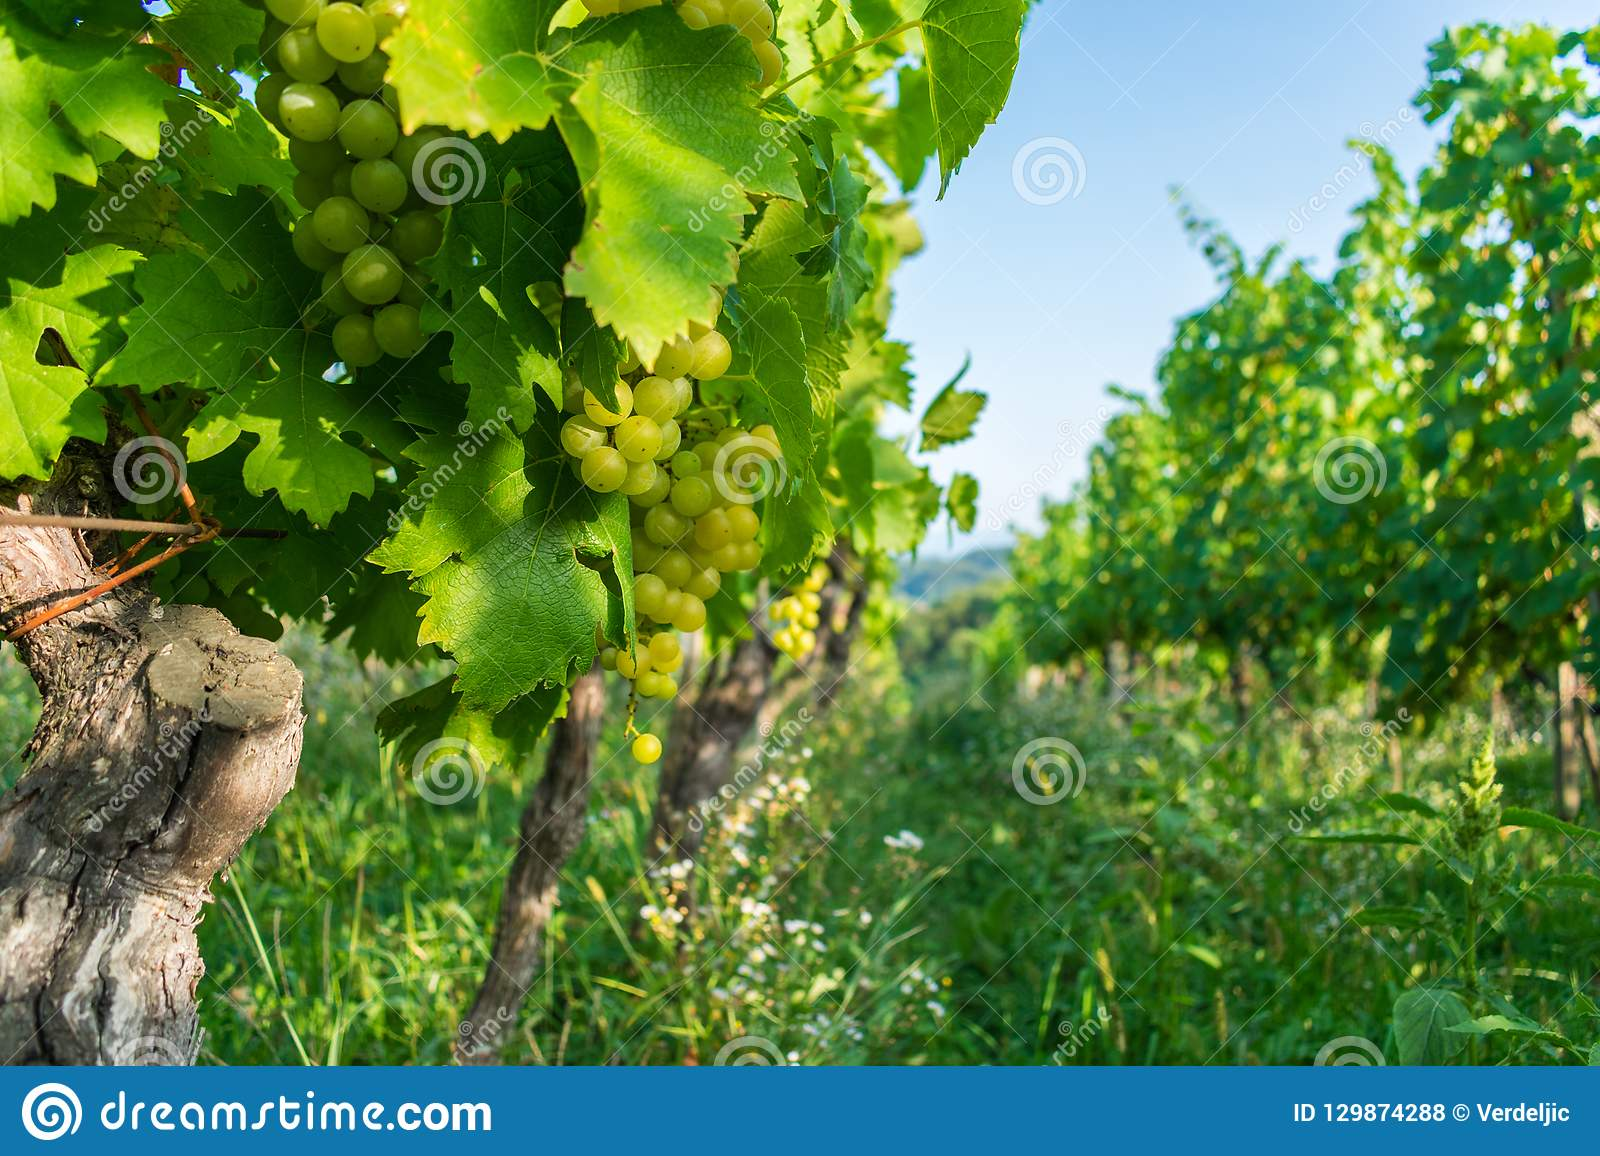 Close up of grapes in a cultivated vineyard in a hilly Zagorje region in Croatia, Europe, during a summer or autumn day